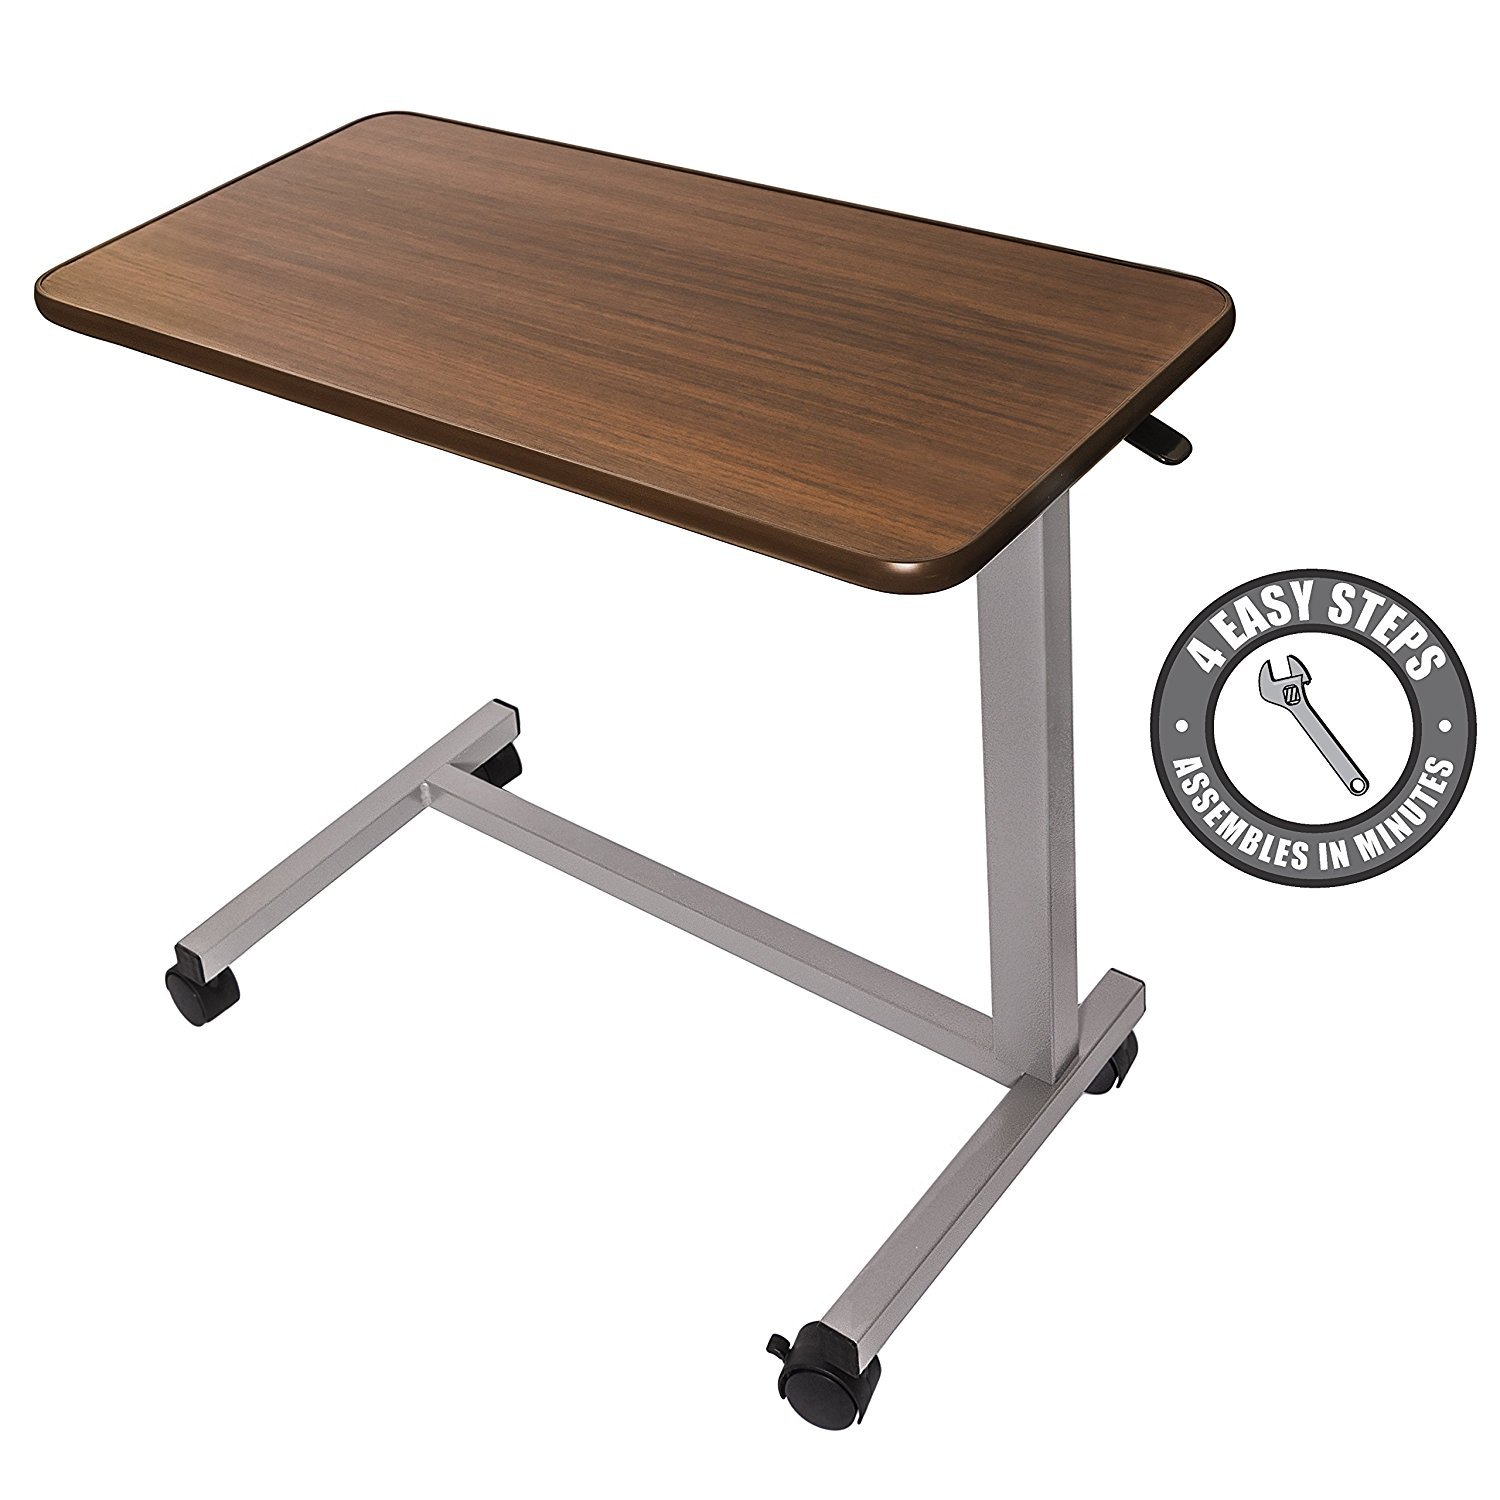 Vaunn Medical Adjustable Overbed Bedside Table with Wheels (Hospital and Home Use) by Vaunn